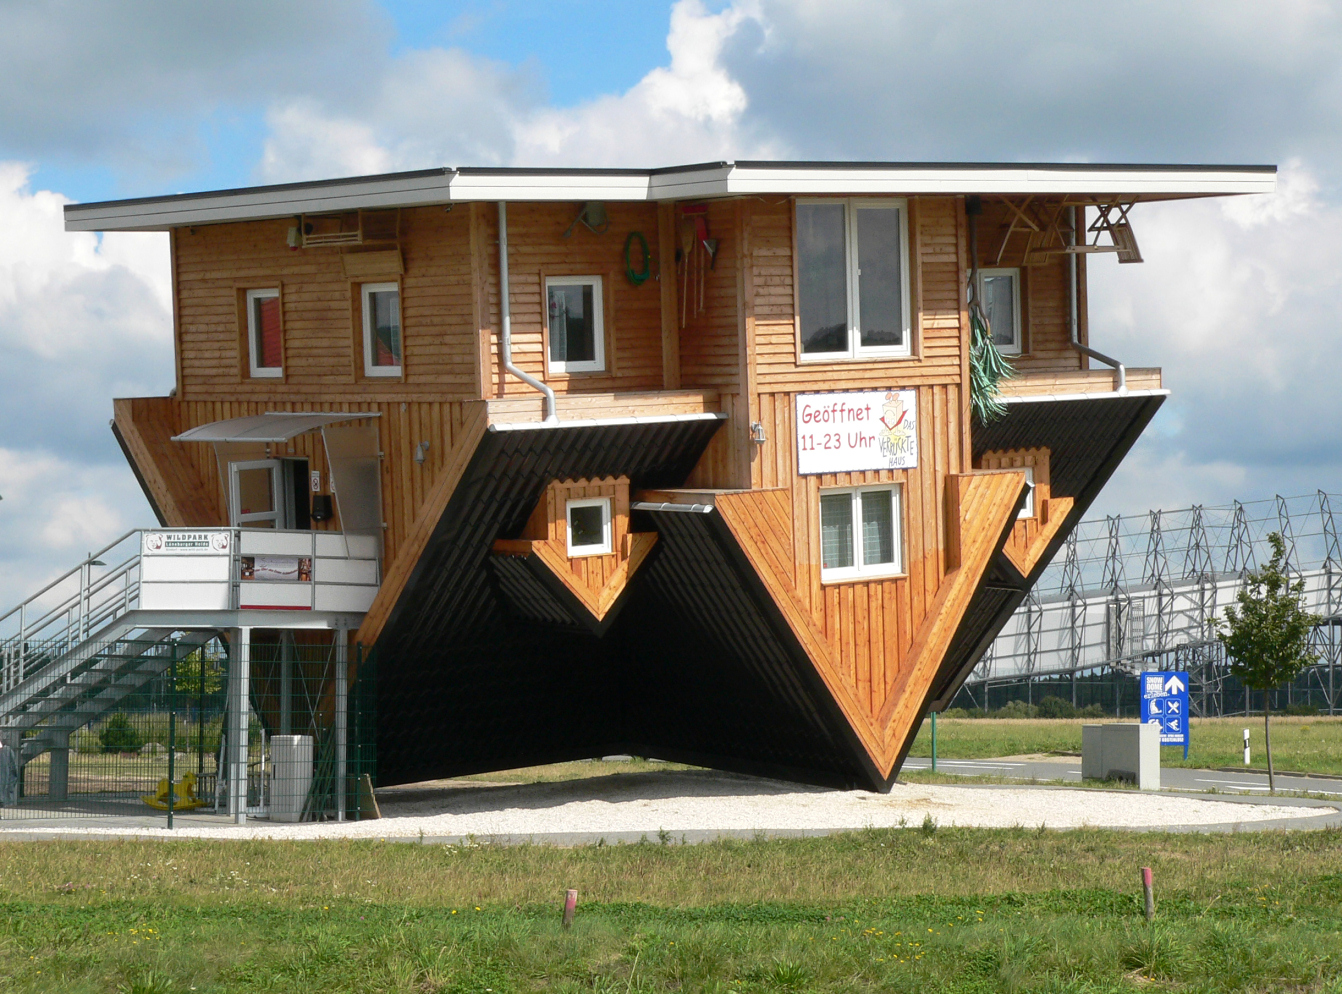 The amazing house in germany that is upside down - New home construction designs ...